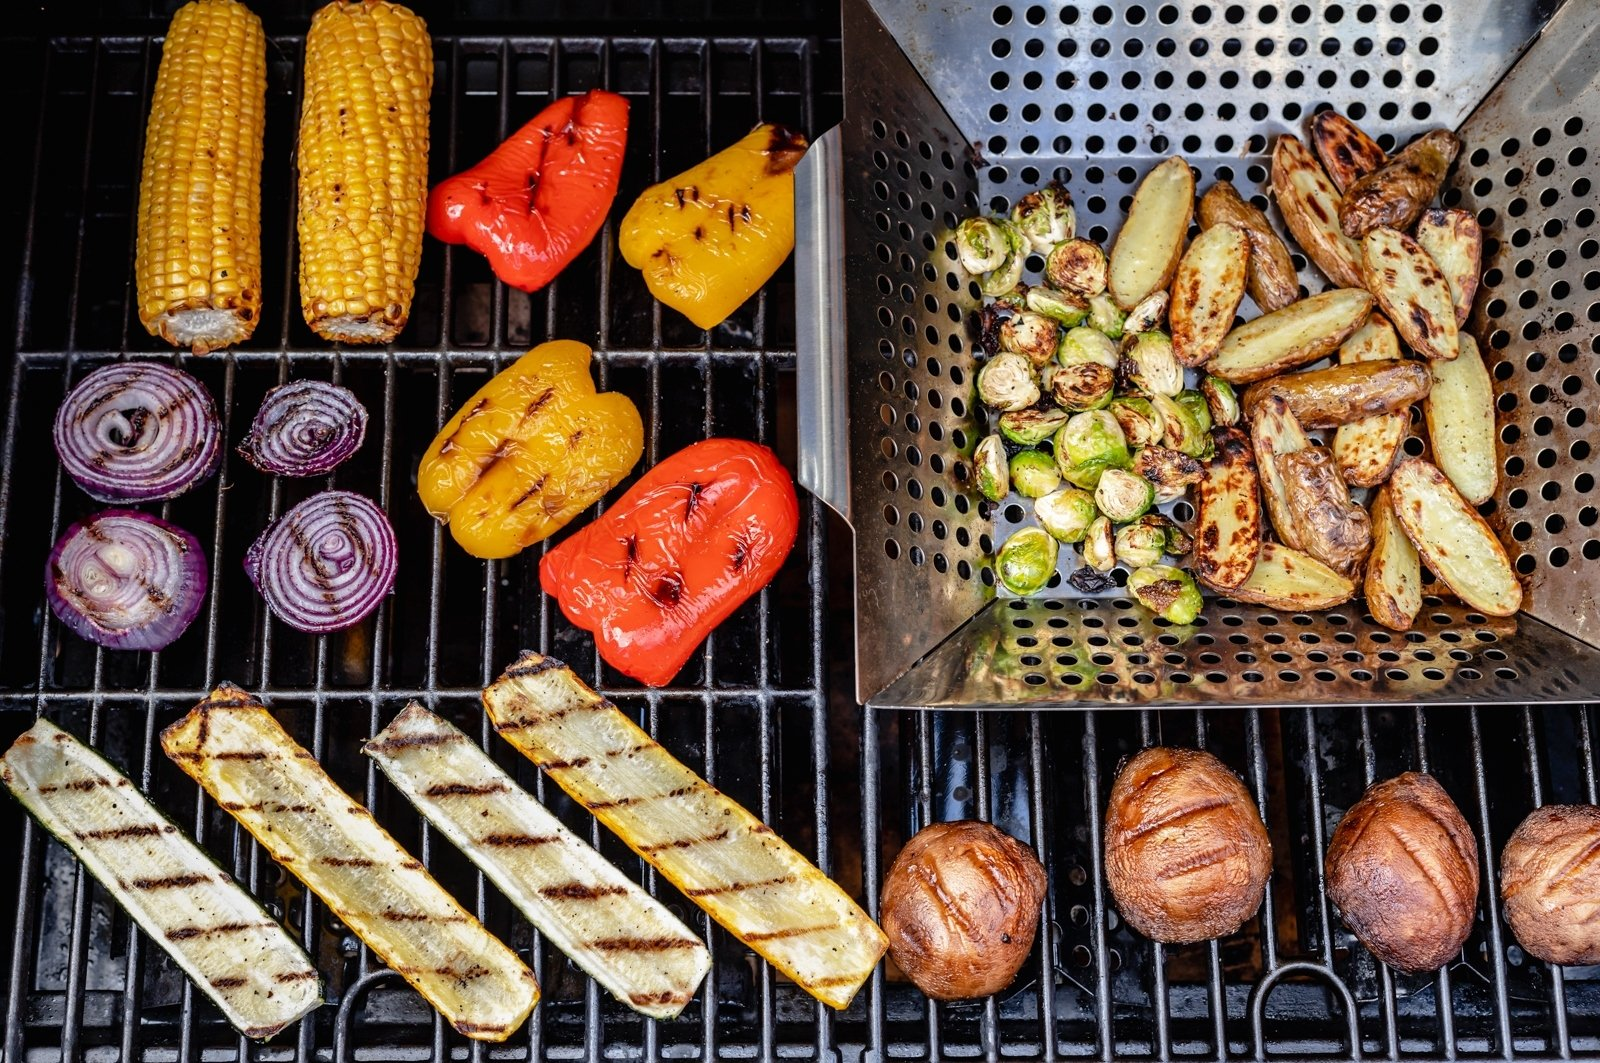 grilling vegetables directly on a grill and in a grill basket